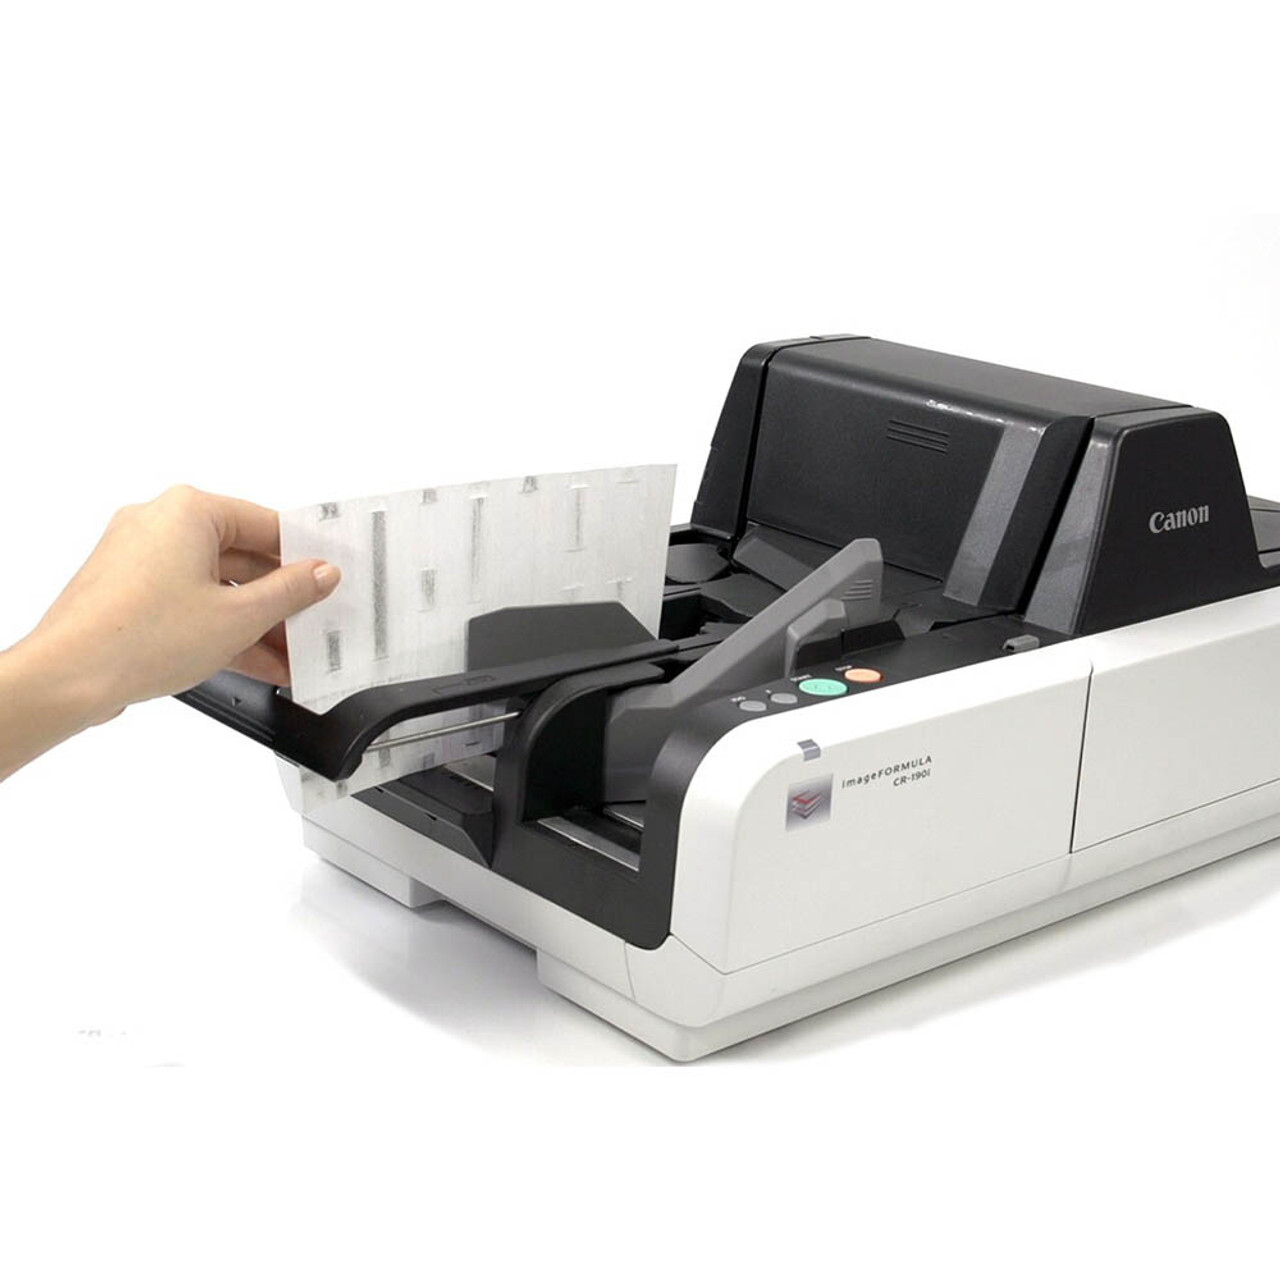 Canon Check Scanner Cleaning Card